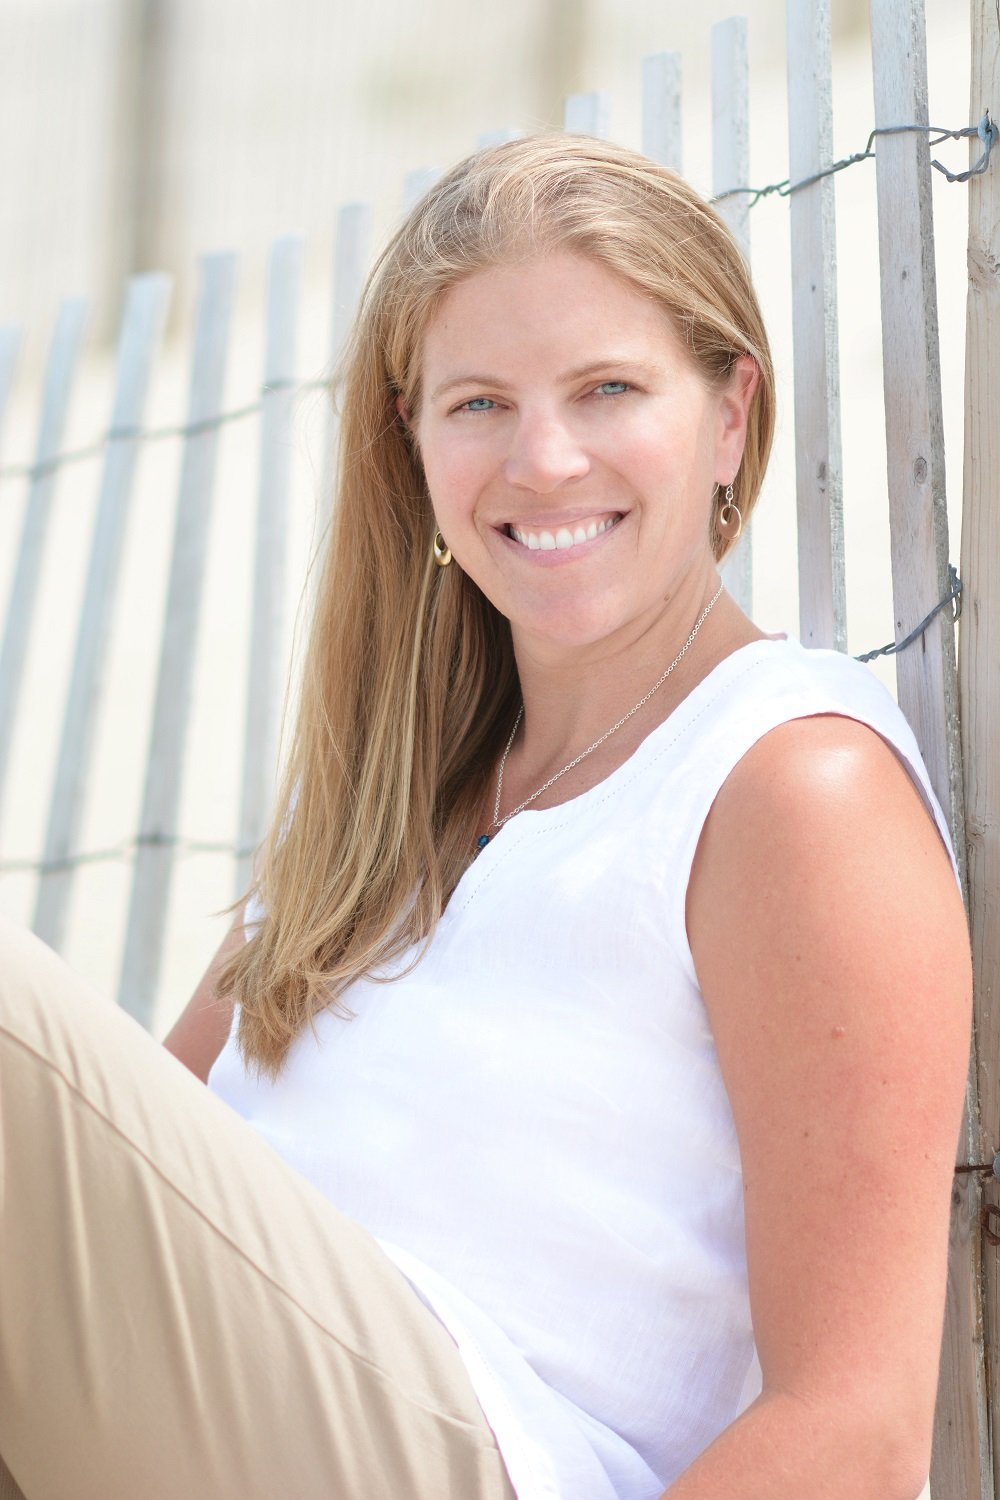 Christi Arndt, Bethany Beach Reator and Sales Manager for The Leslie Kopp Group